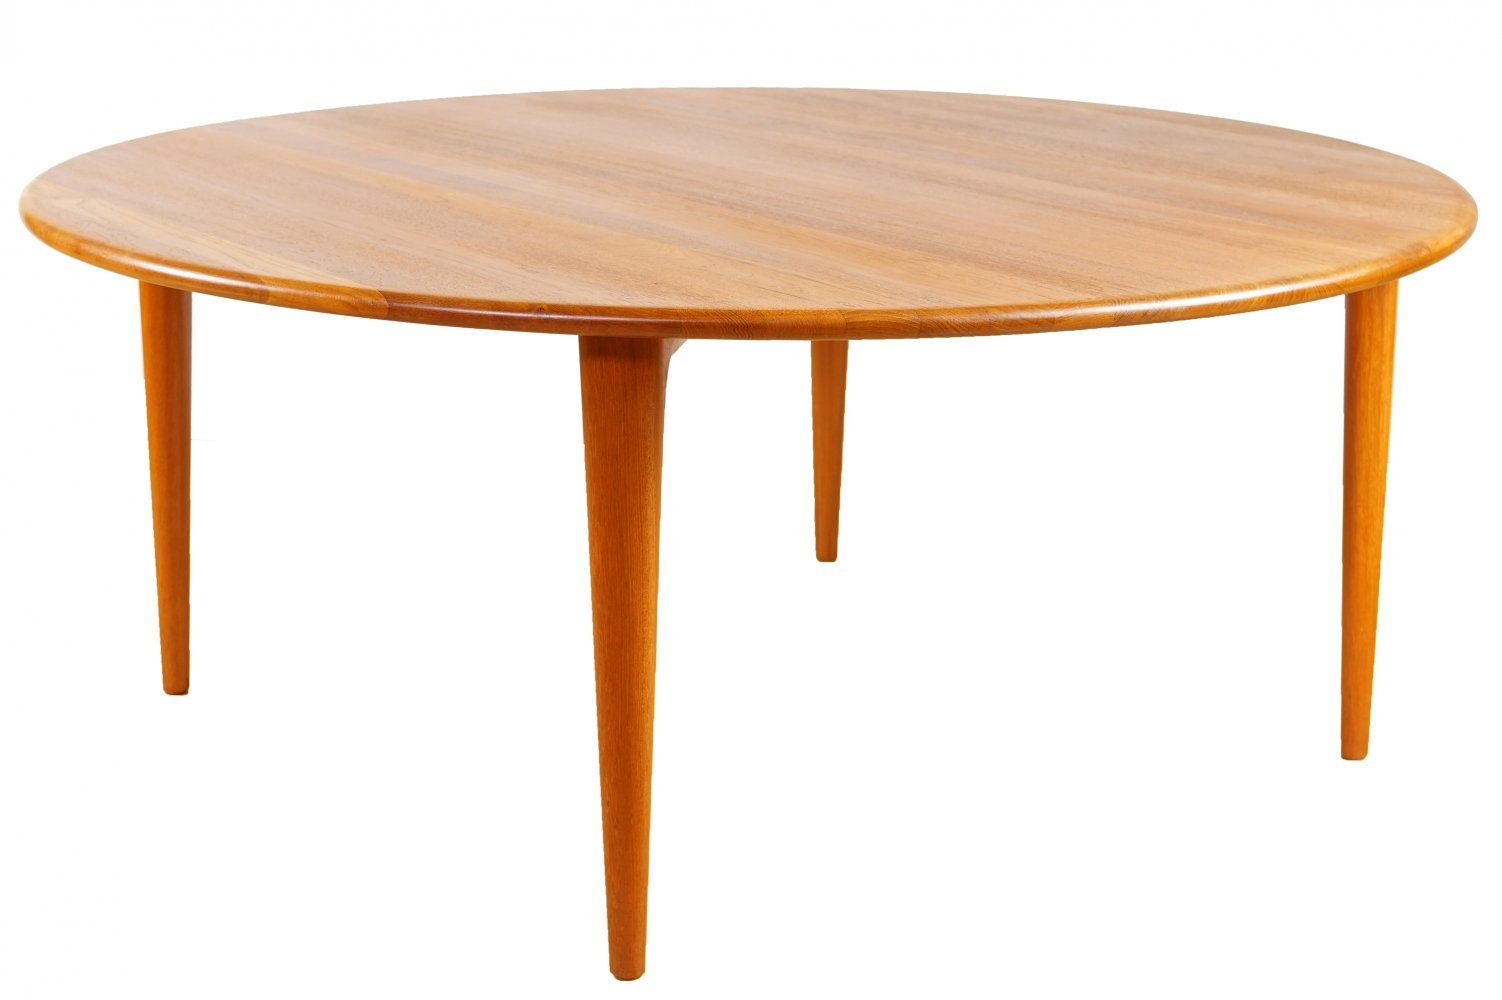 Solid Teak Coffee Table from A. Mikael Laursen